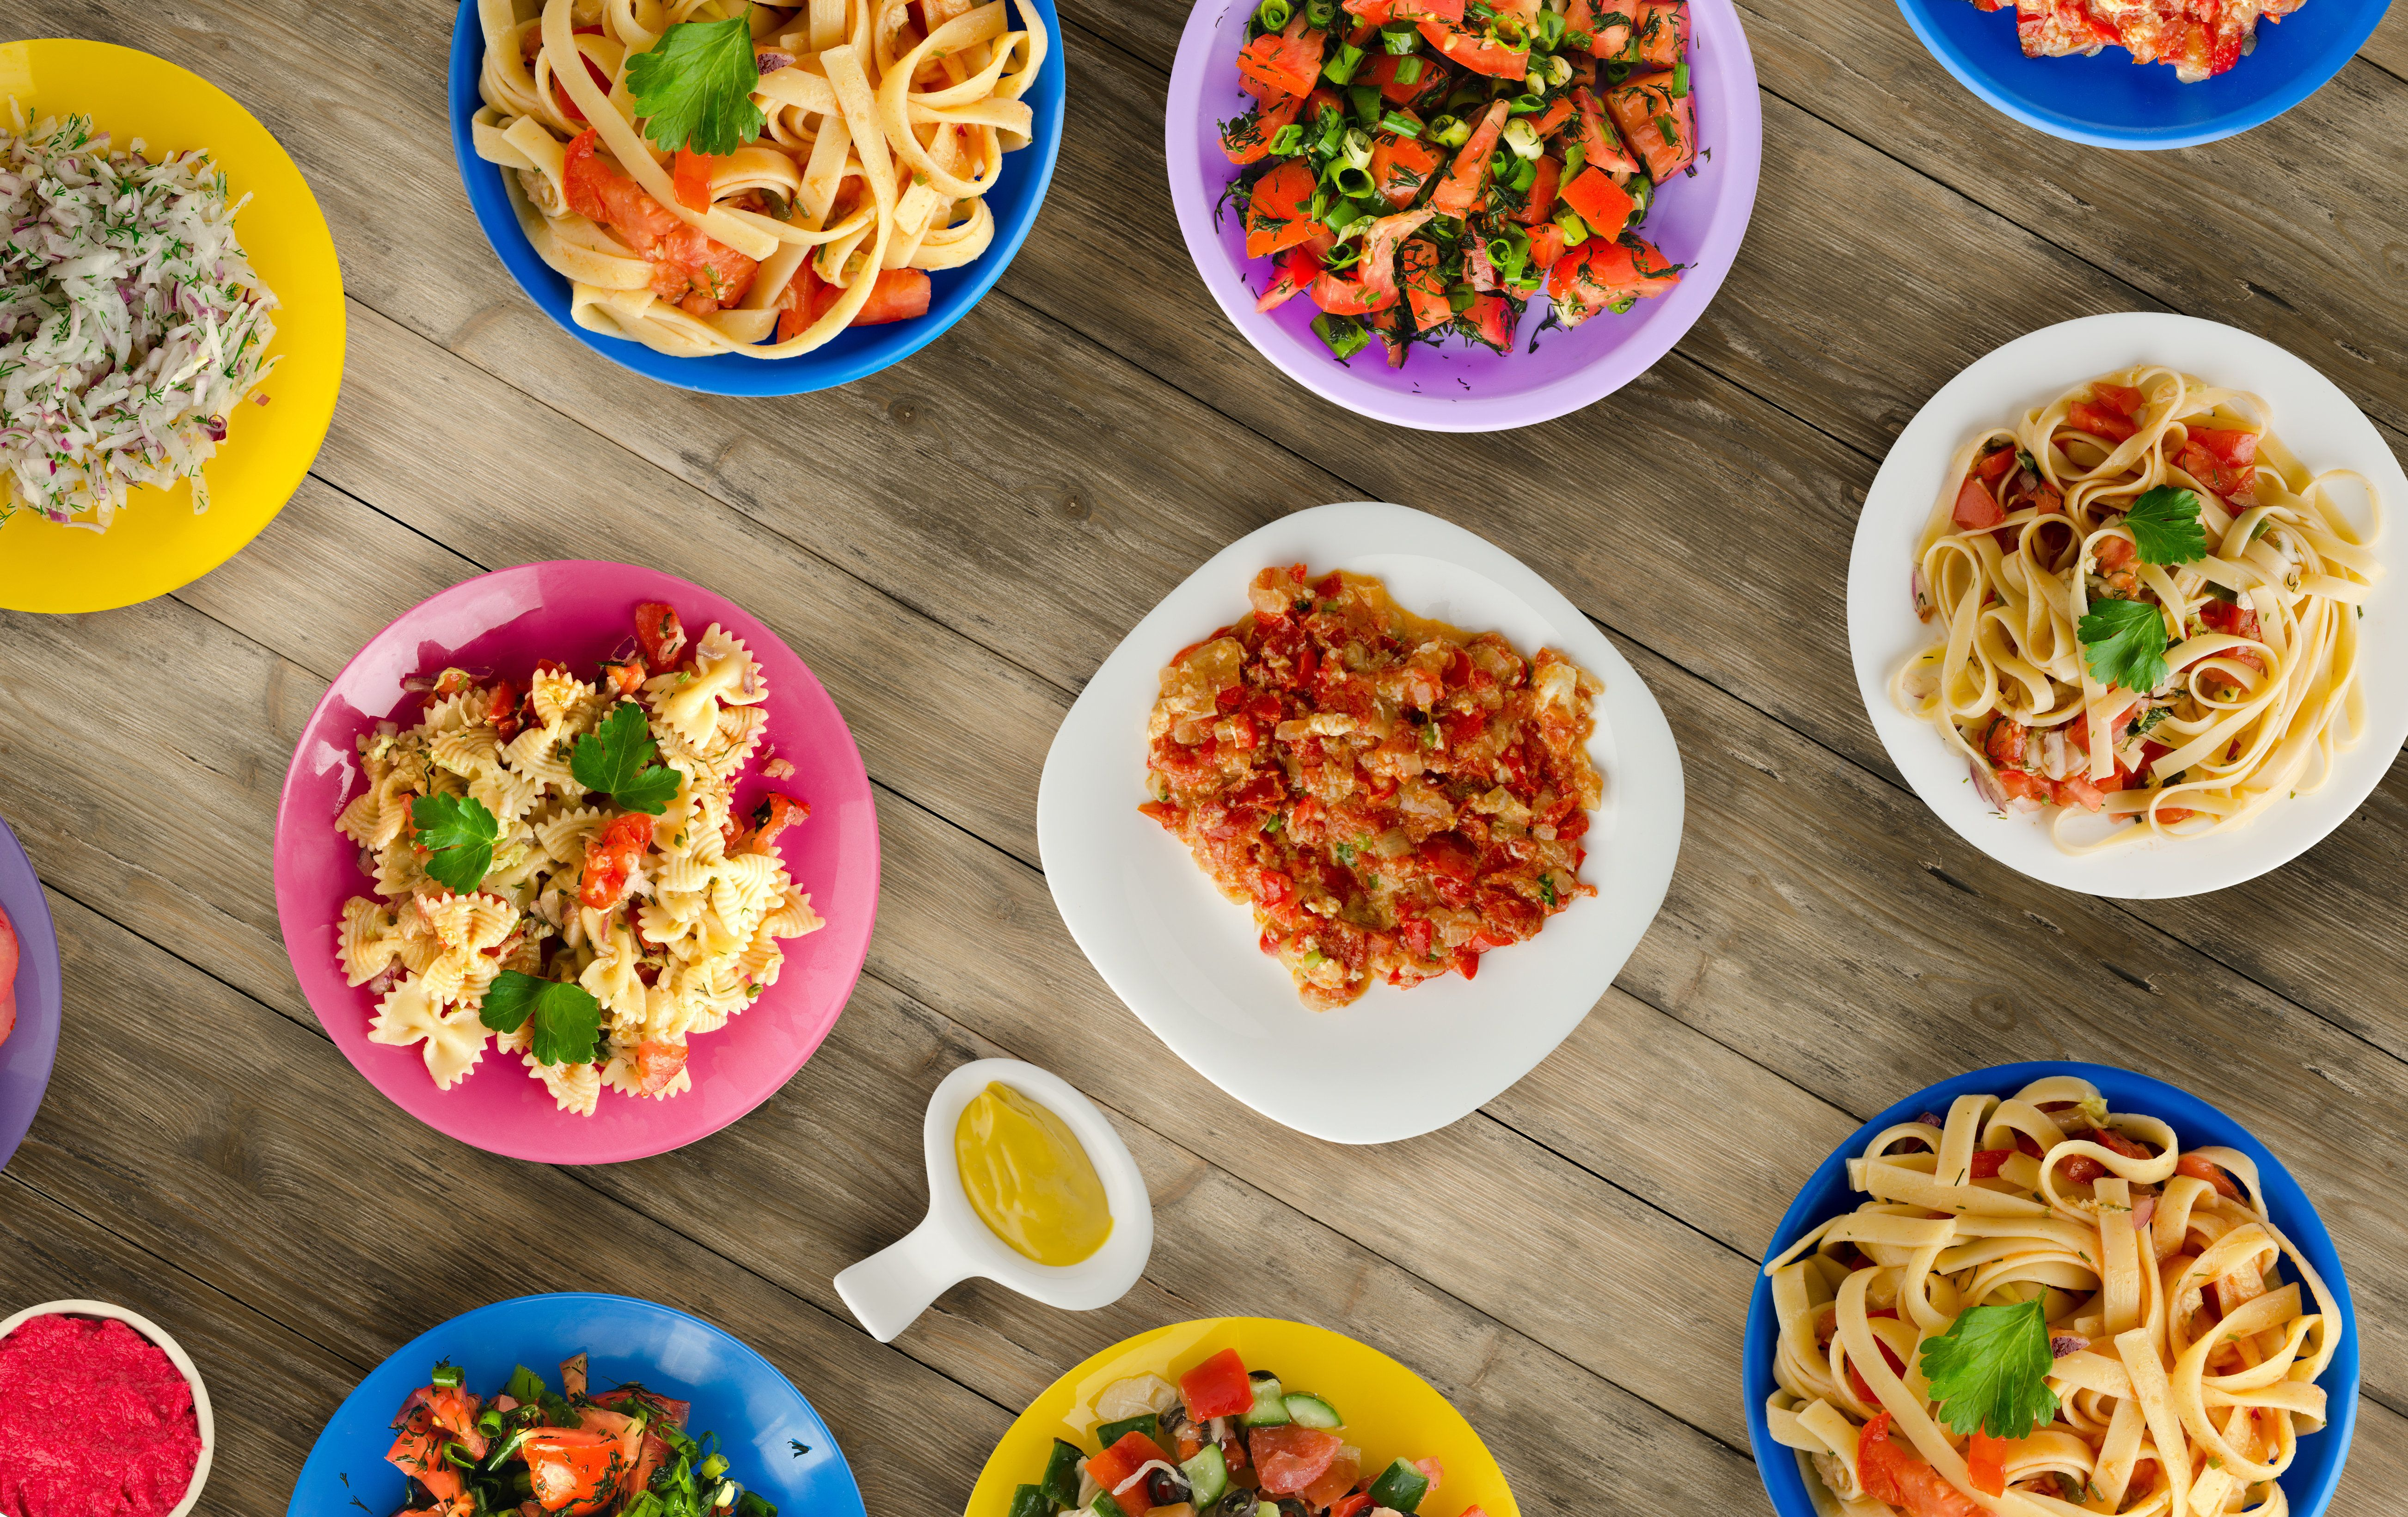 Finally, An Easy Way To Measure Pasta (Plus Other Portion Sizes